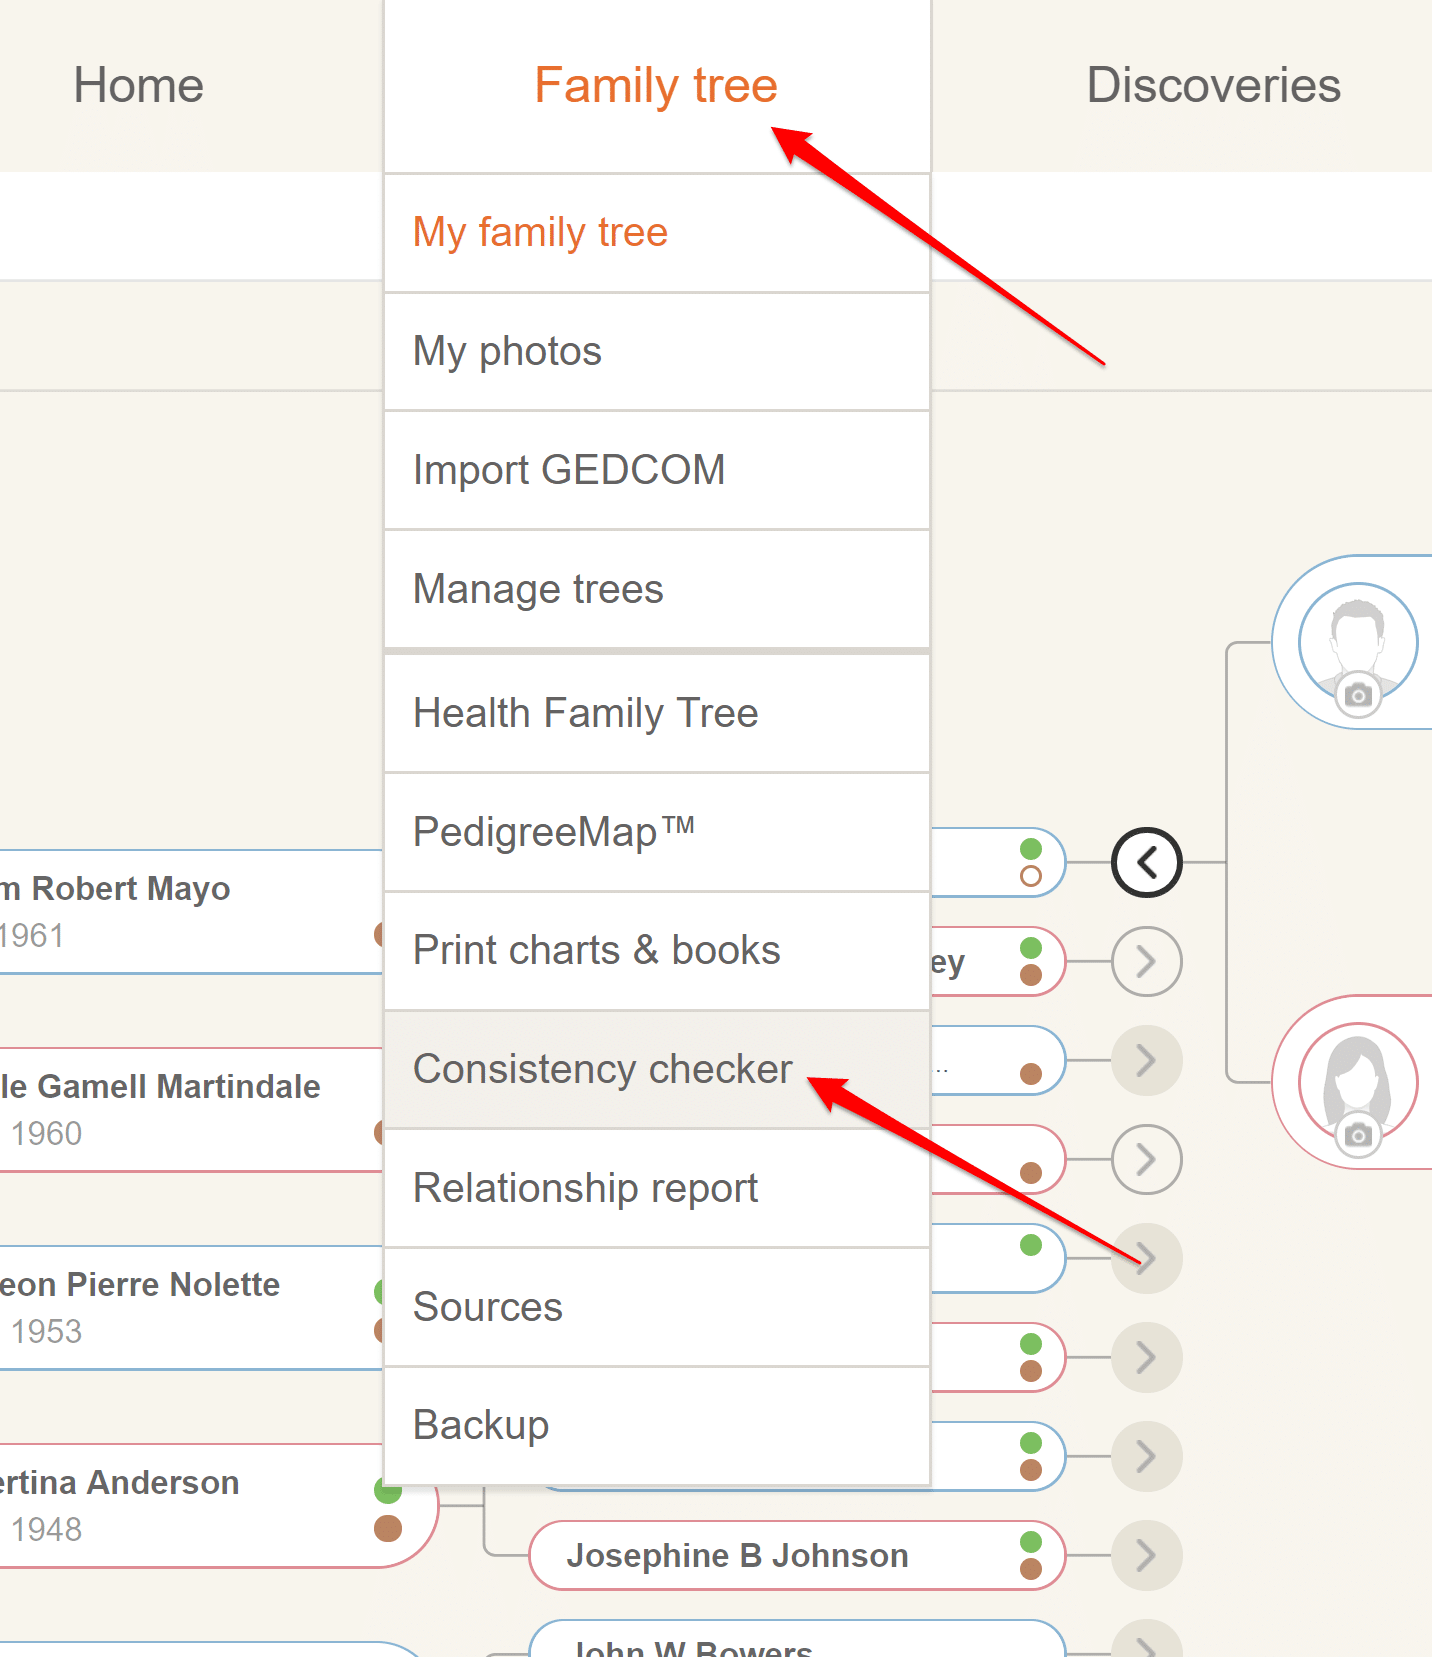 MyHeritage Consistency Checker